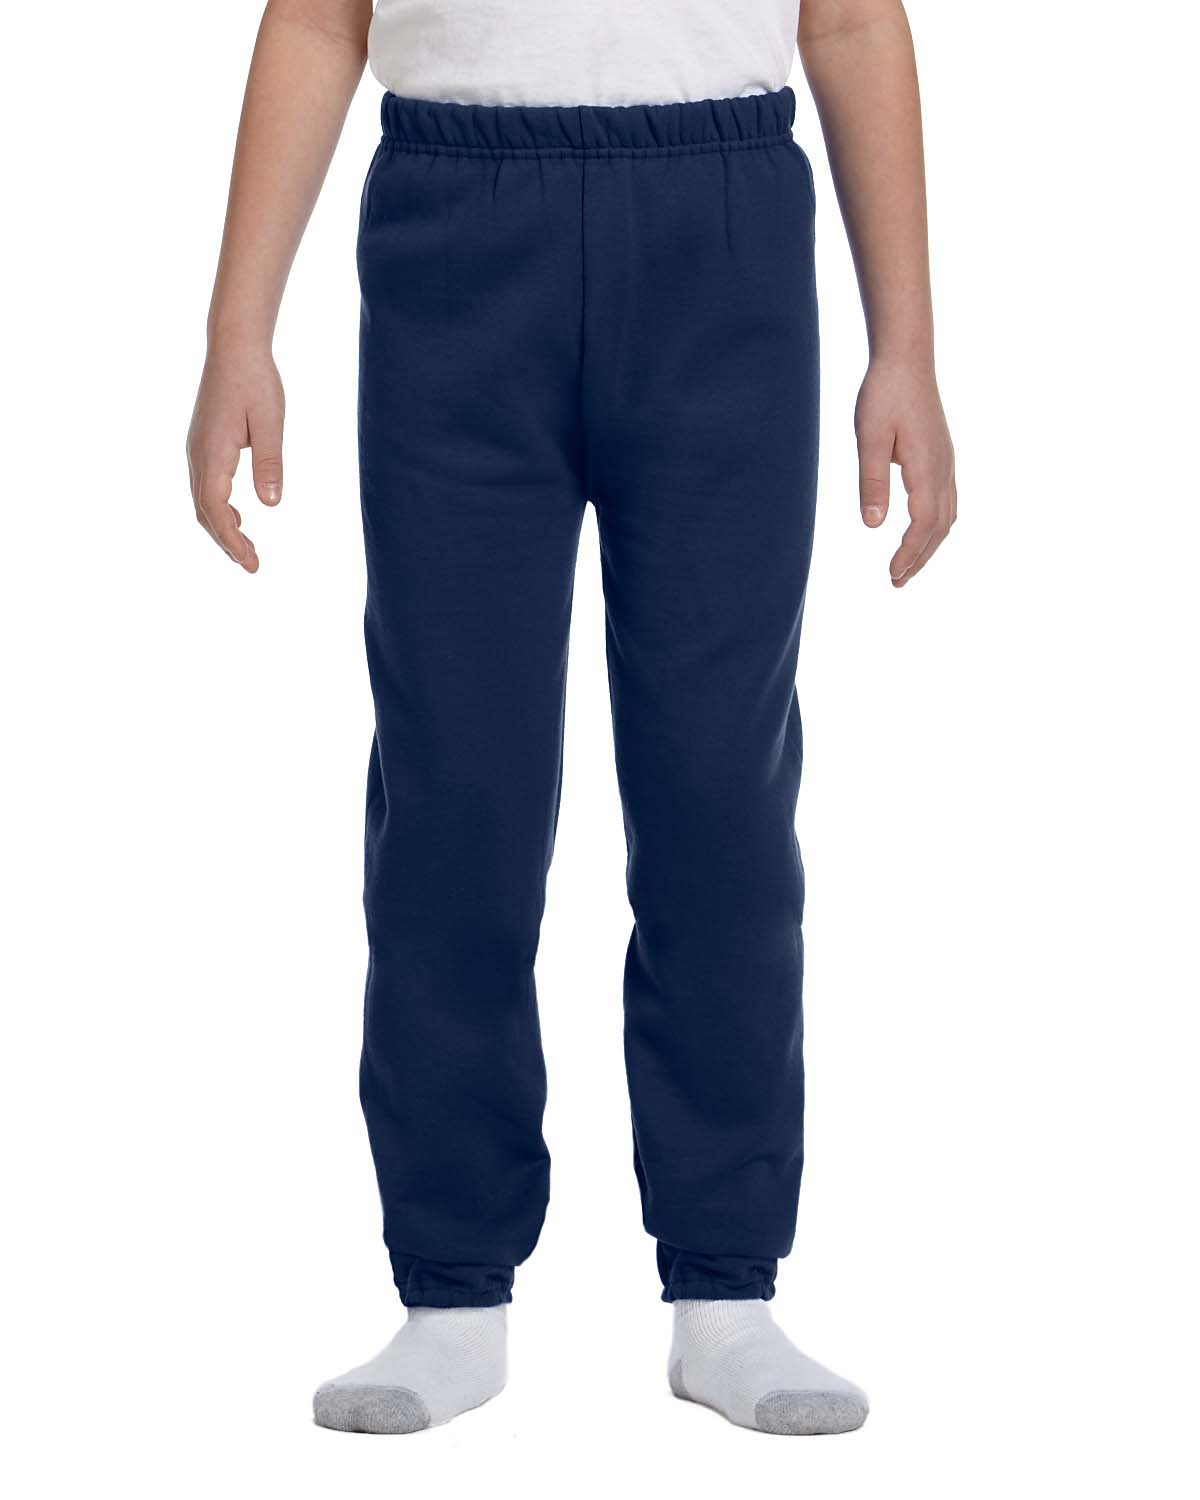 Jerzees 973B Youth NuBlend Sweatpants